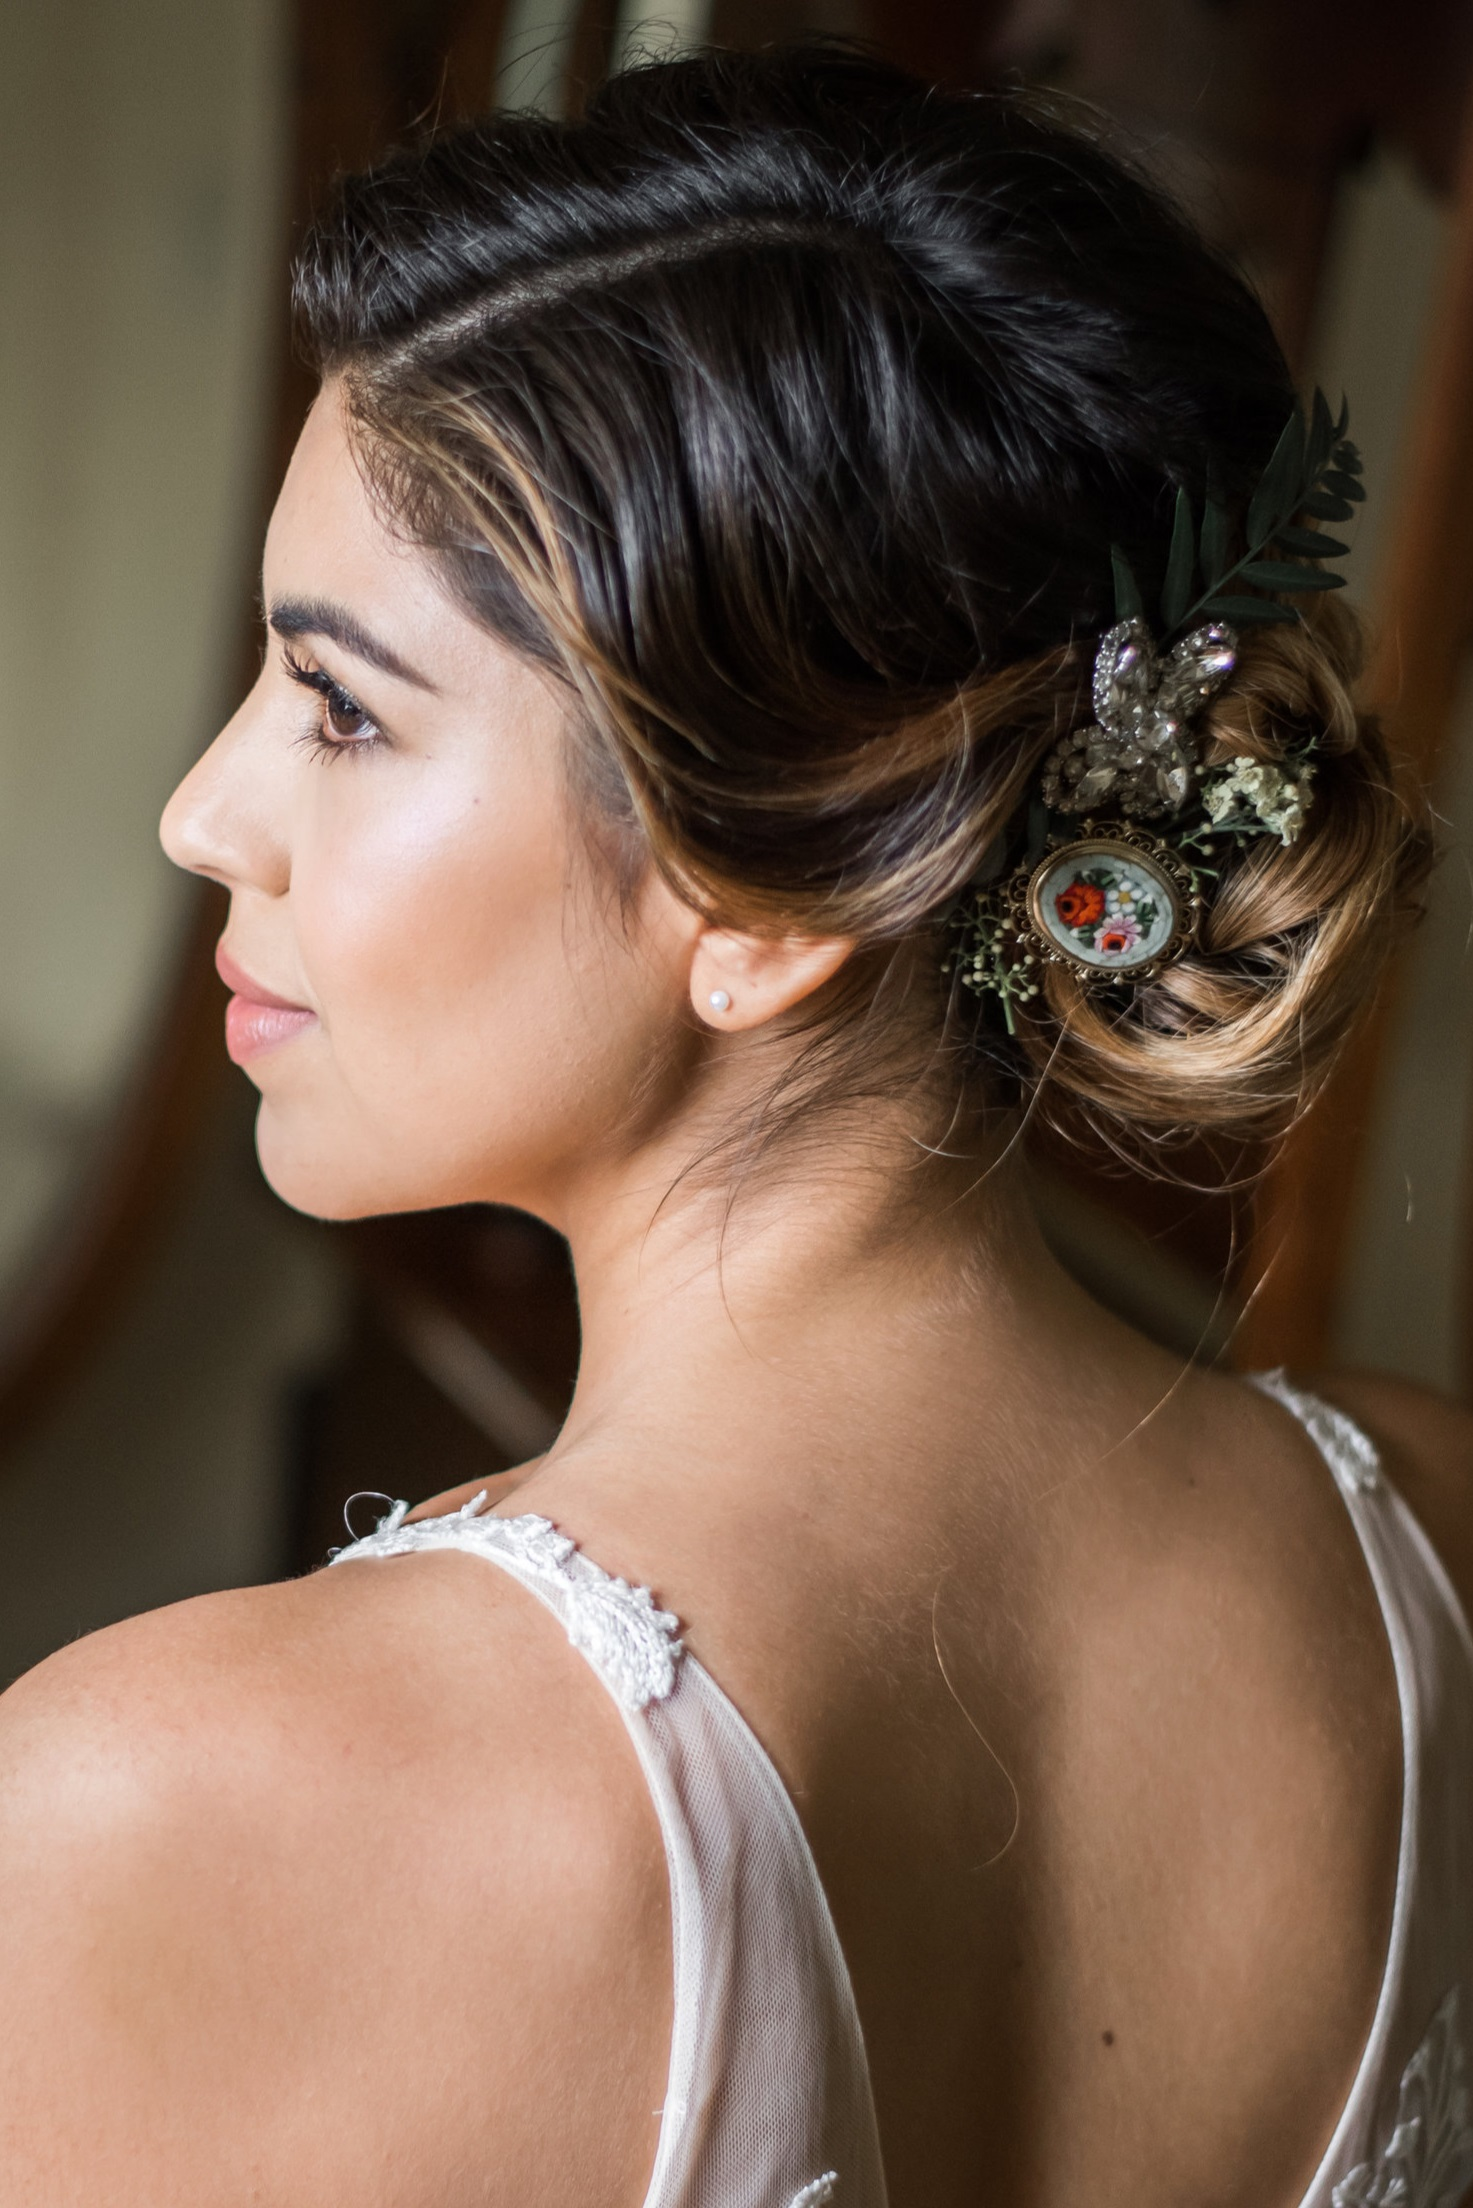 Natural Wedding Makeup Look for Vintage Styled Bride by Ventura Makeup Artist Glory Munoz